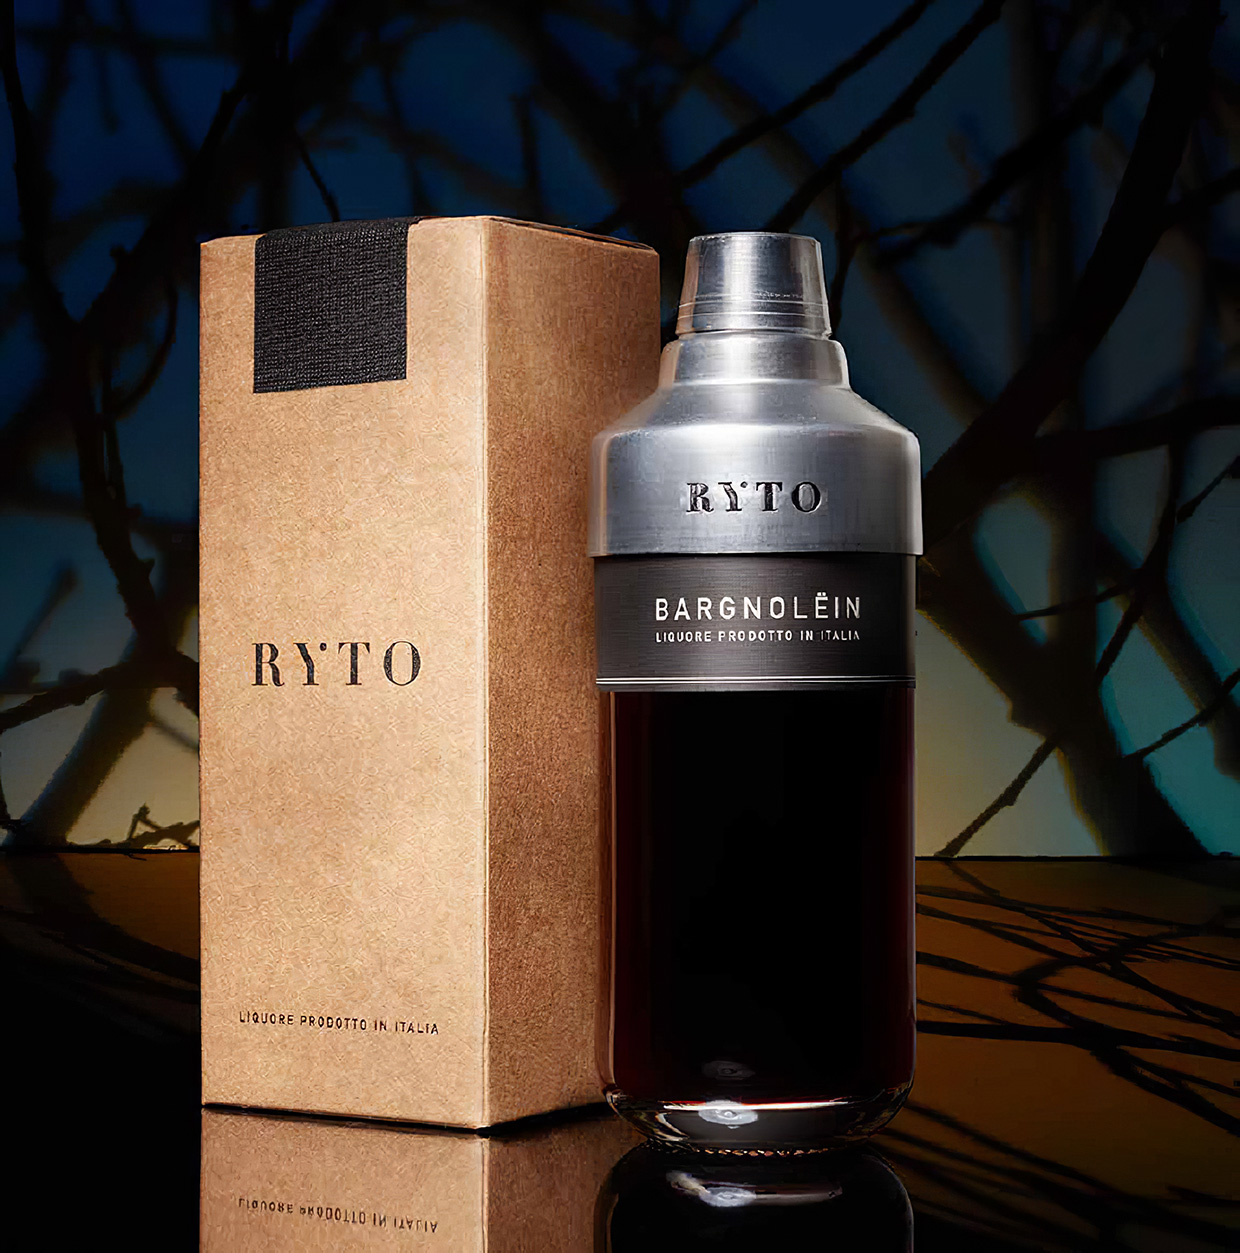 ryto-bargnolino-gio-tirotto-packaging-edit